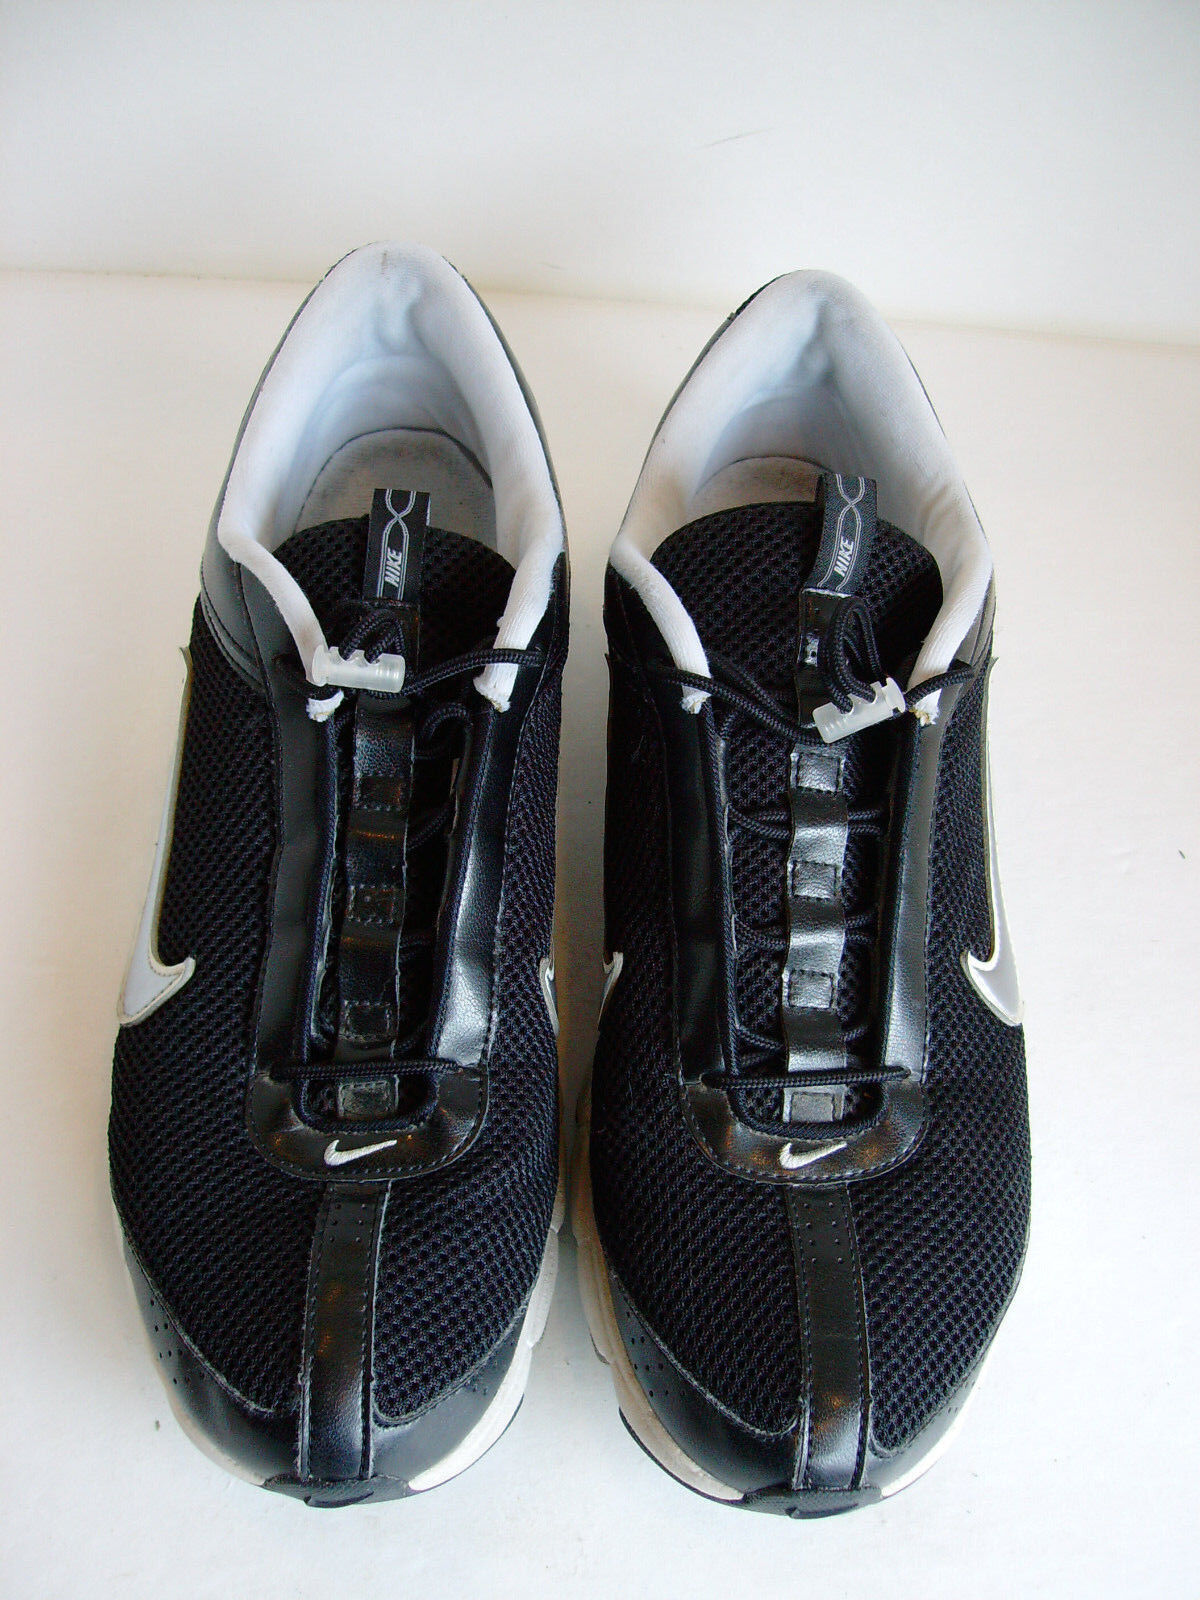 Nike Air Lucia Black Athletic Shoes, Womens size 10.5 Seasonal clearance sale